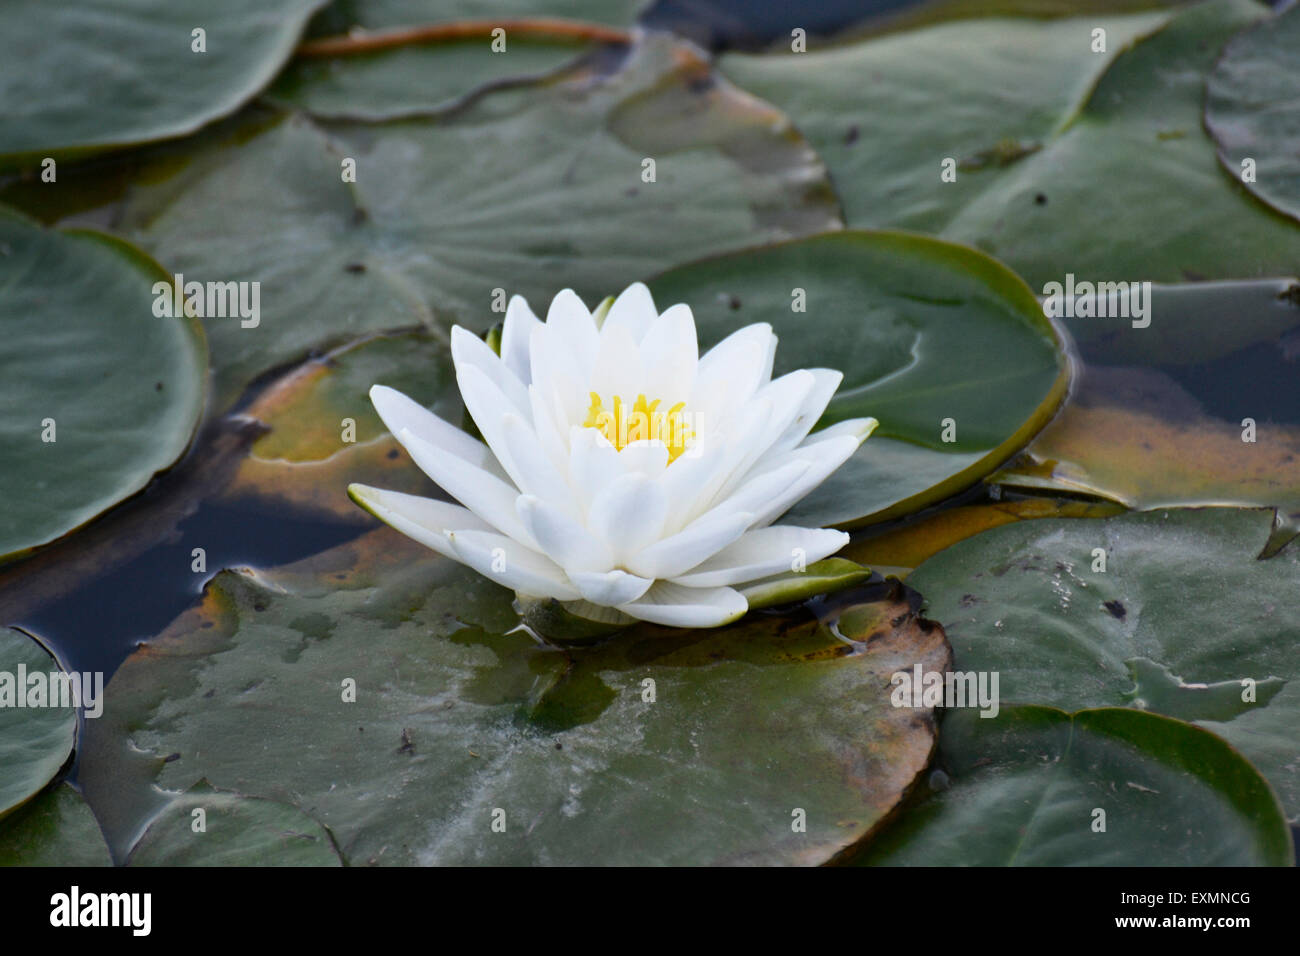 Lily pad flower white stock photos lily pad flower white stock this is a flower sitting on a lily pad in the chicago botanic garden izmirmasajfo